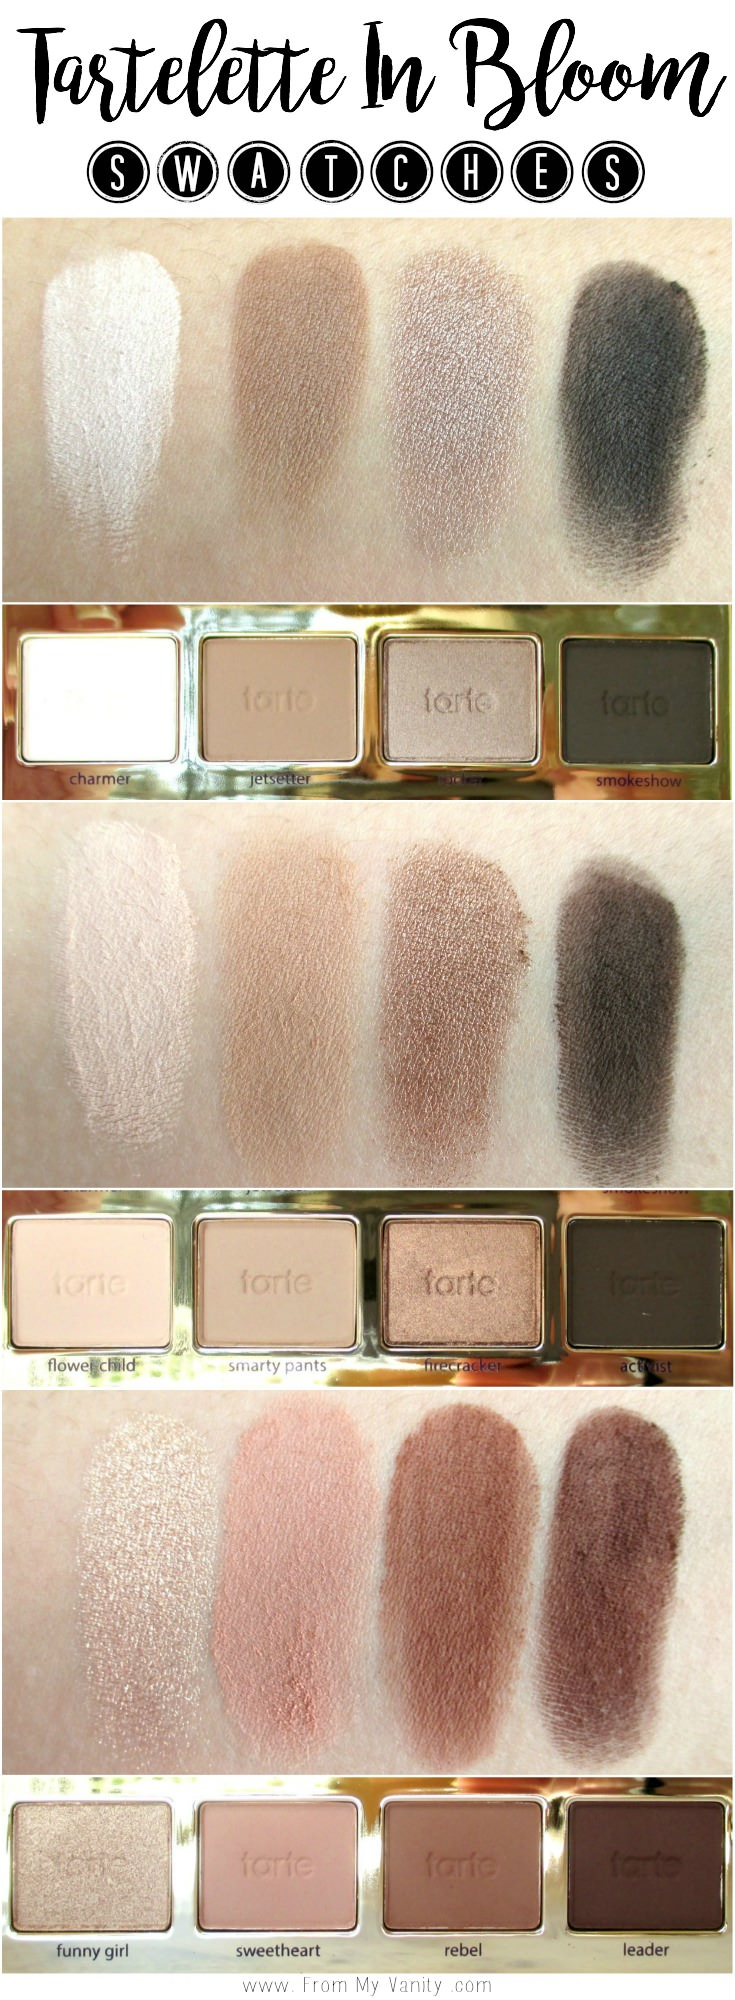 Tarte Tartelette In Bloom Swatches!